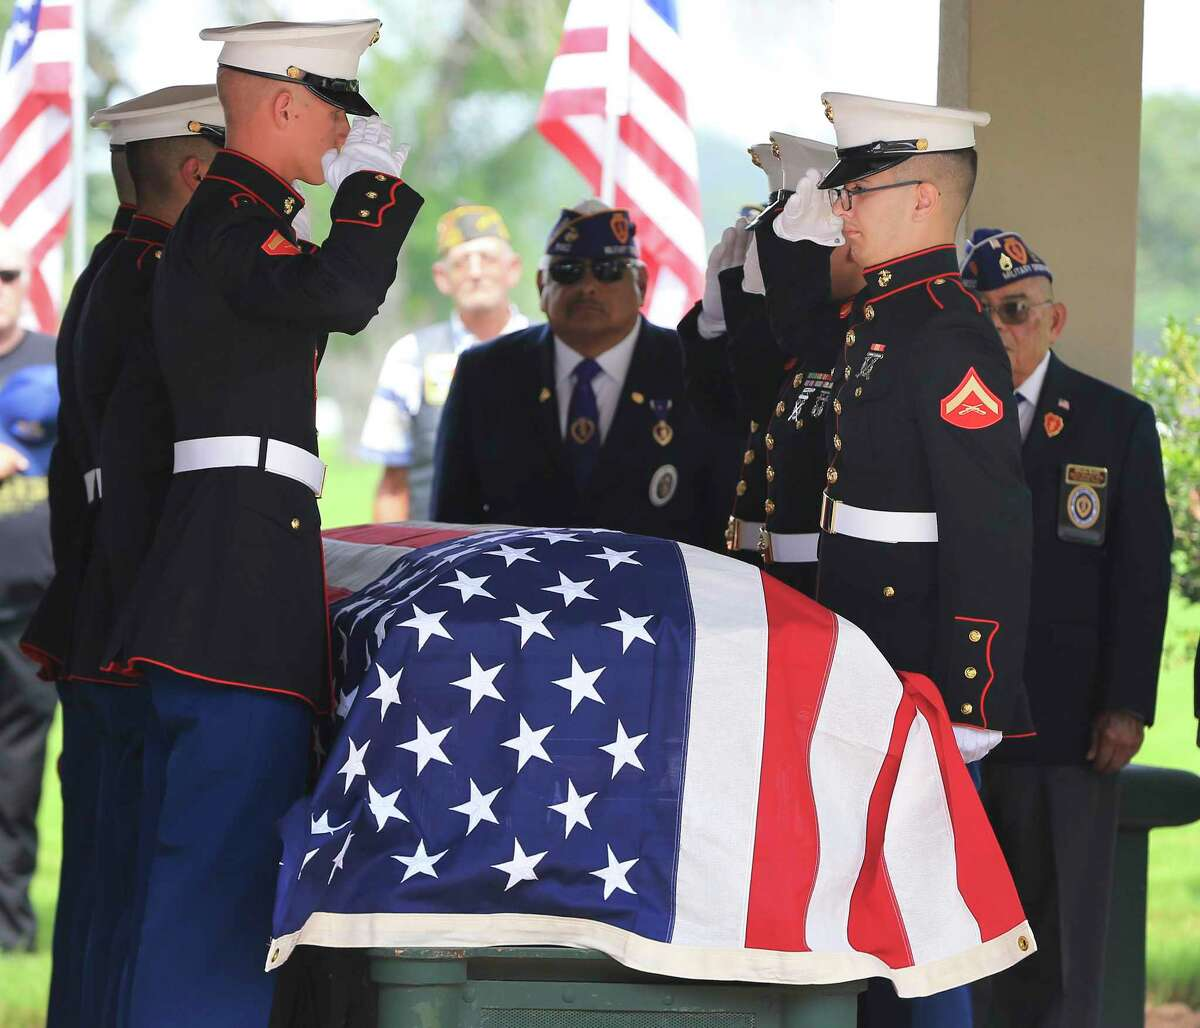 A Marine Corps honor guard salutes the casket of Marine Pfc. J.L. Hancock during a funeral service at Fort Sam Houston National Cemetery on Wednesday. He served in the 2nd Marine Division and was killed during the bitter fighting for the small island of Betio in the Tarawa Atoll of the Gilbert Islands on Nov. 22, 1943. The Defense POW/MIA Accounting Agency identified the remains of Hancock, 21, who grew up in the Texas Panhandle town of McLean.